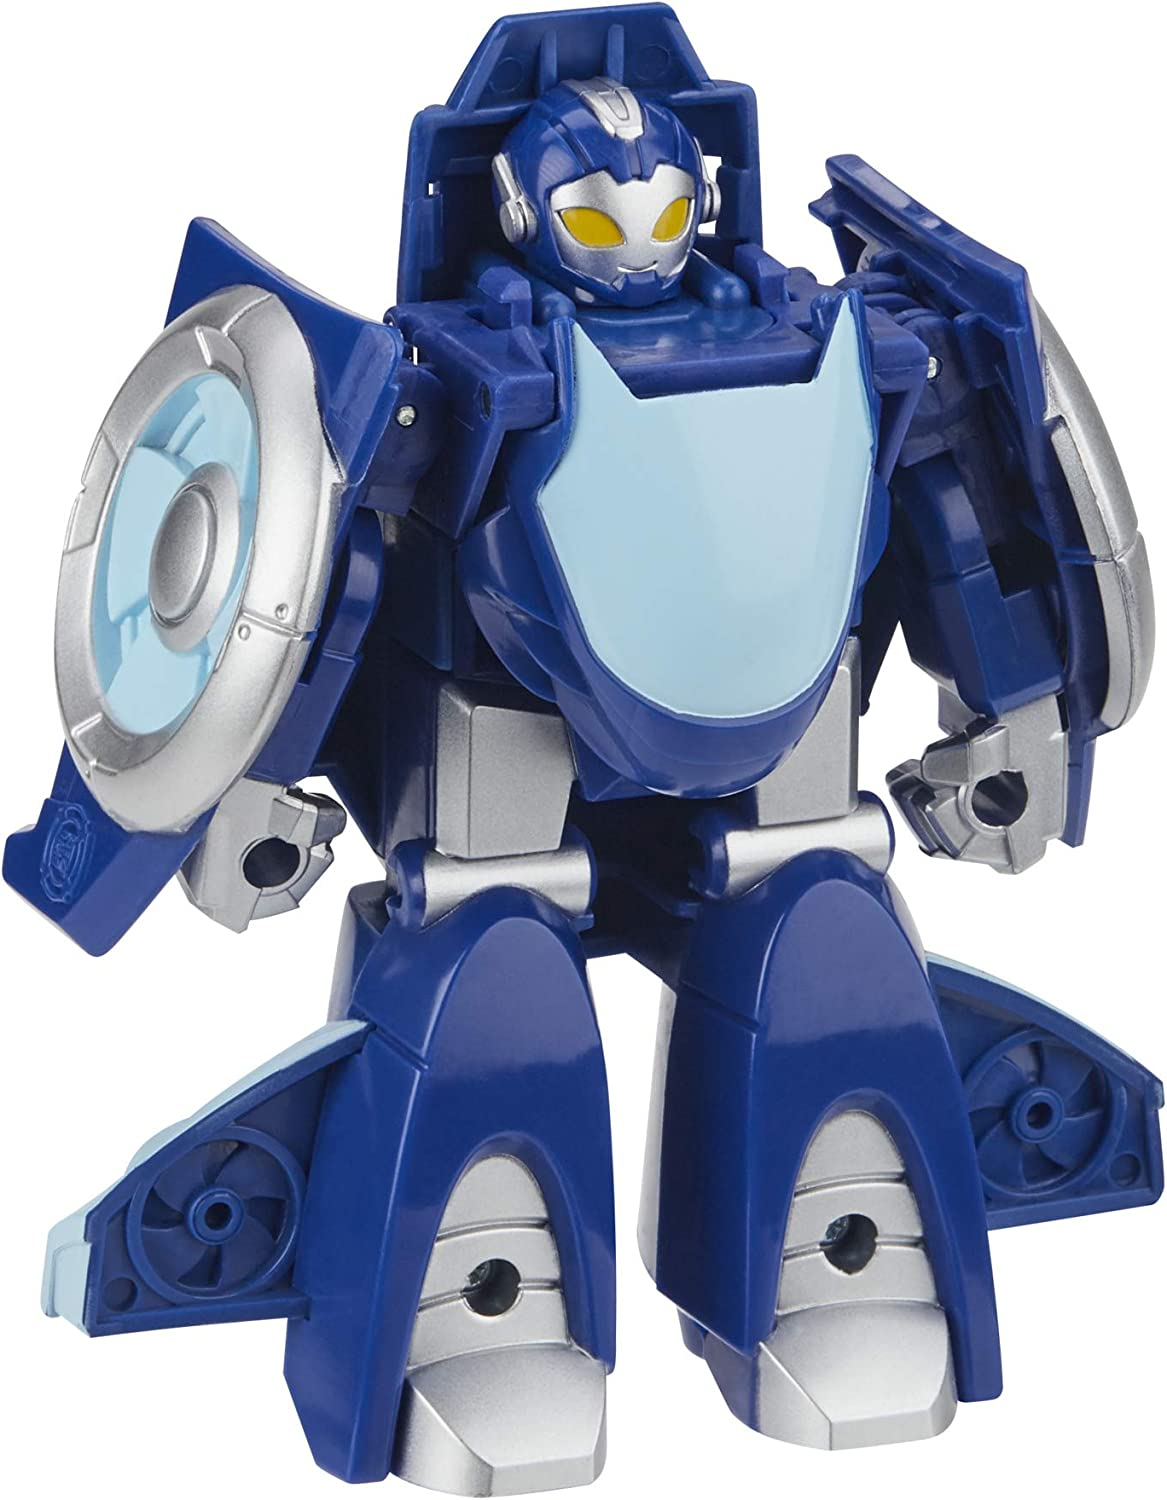 Transformers Playskool Heroes Factory outlet Rescue Bots 4 years warranty The Whirl Academy Flig